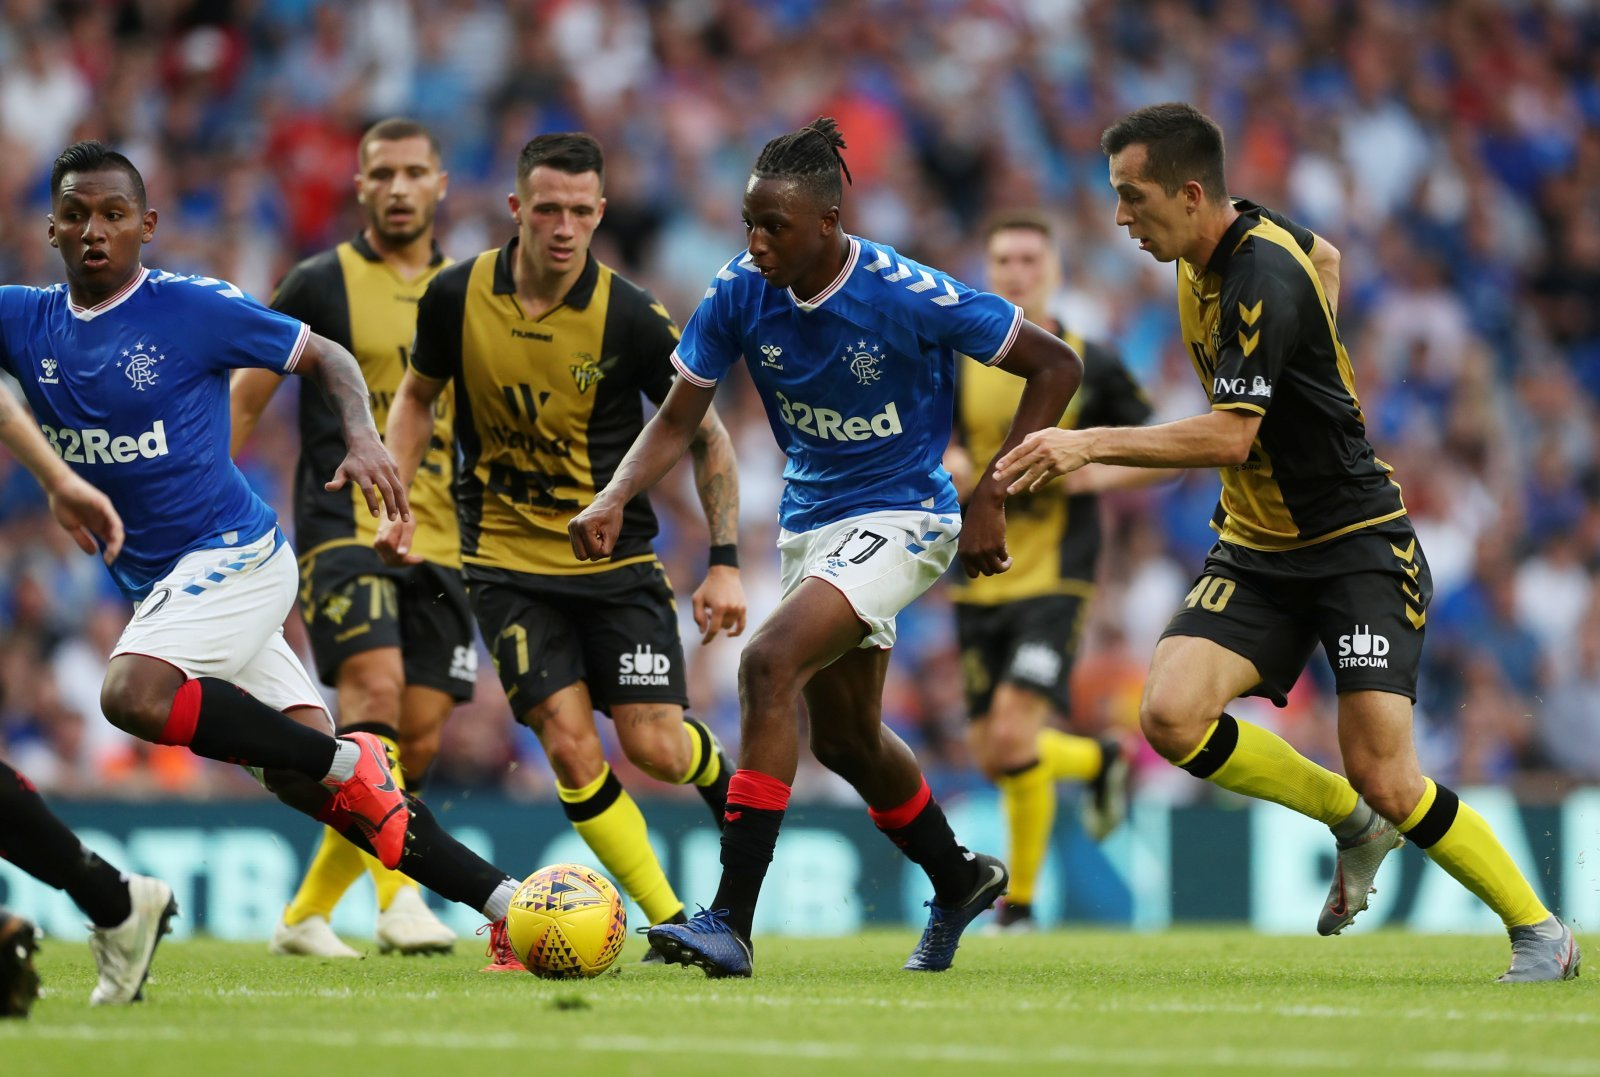 Rangers: Fans were delighted with Joe Aribo's performance against FC Midtjylland